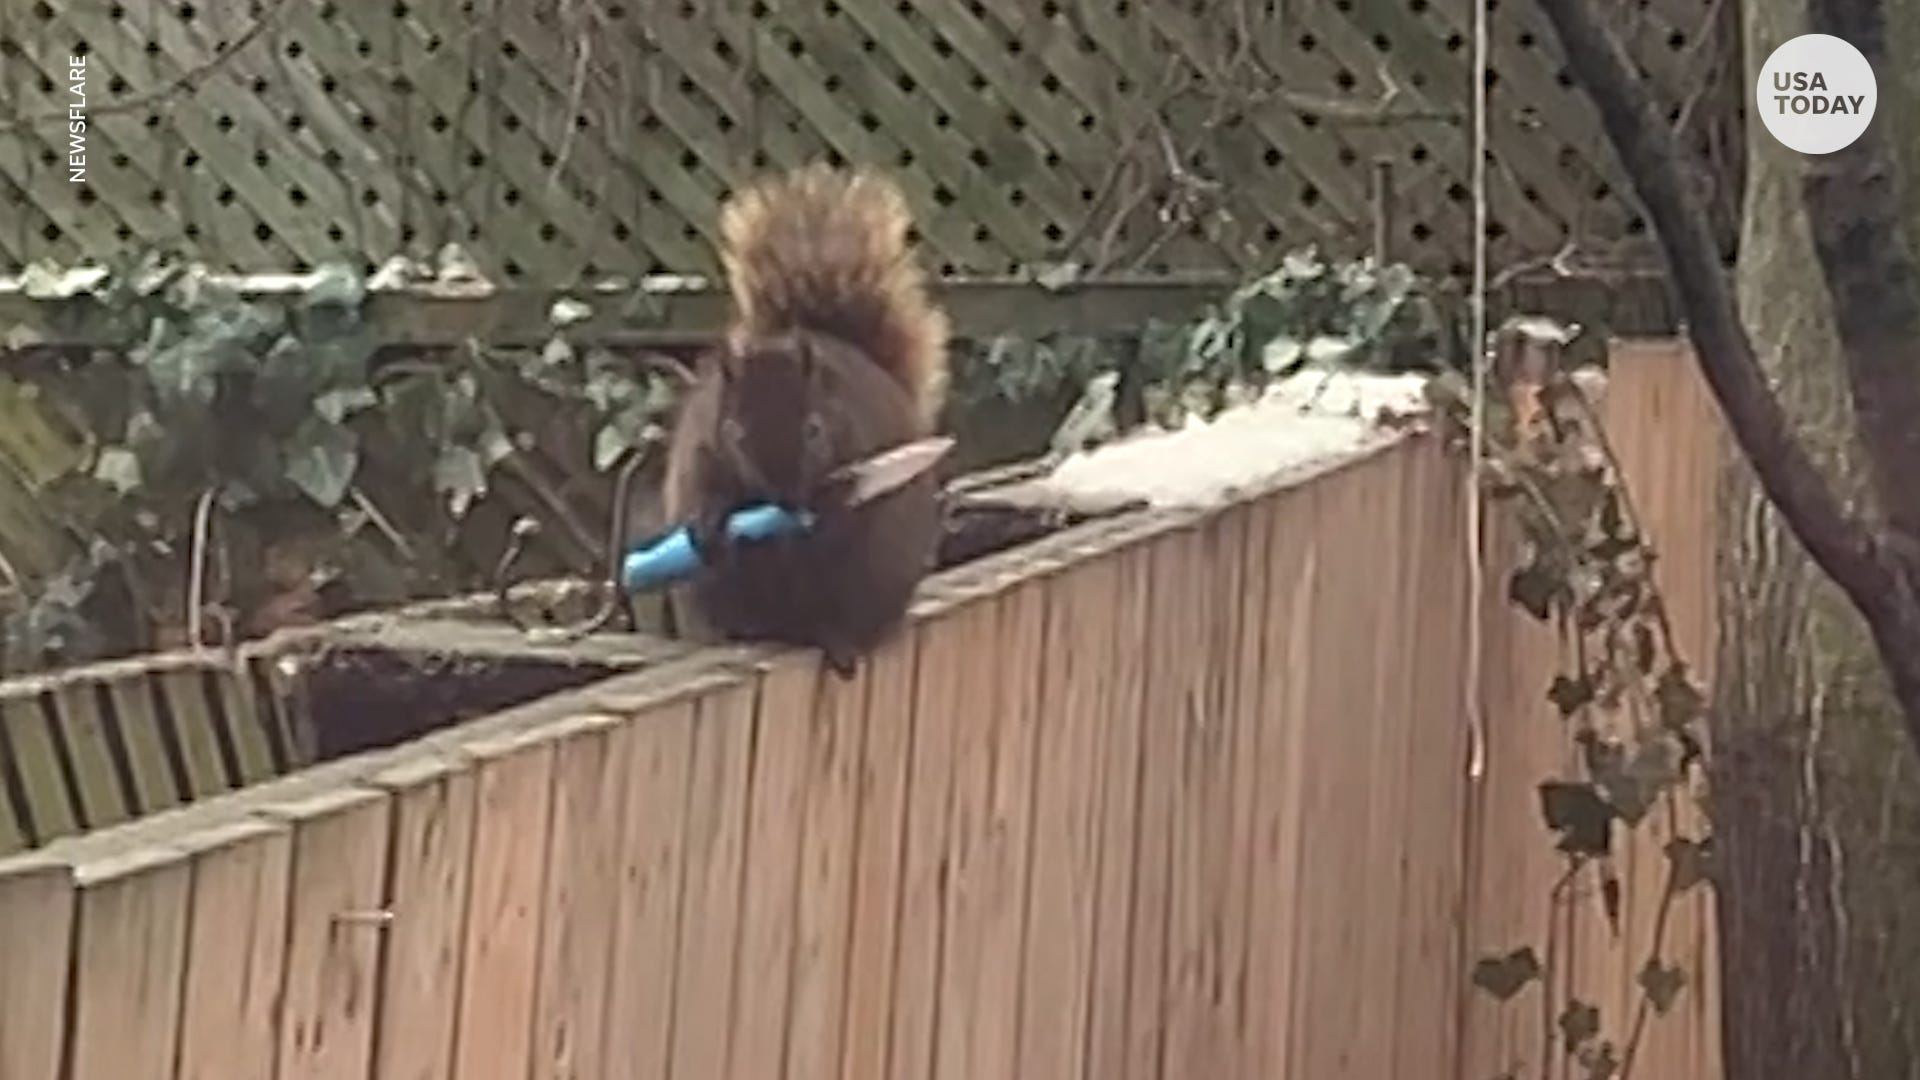 Woman catches squirrel holding a knife in her backyard